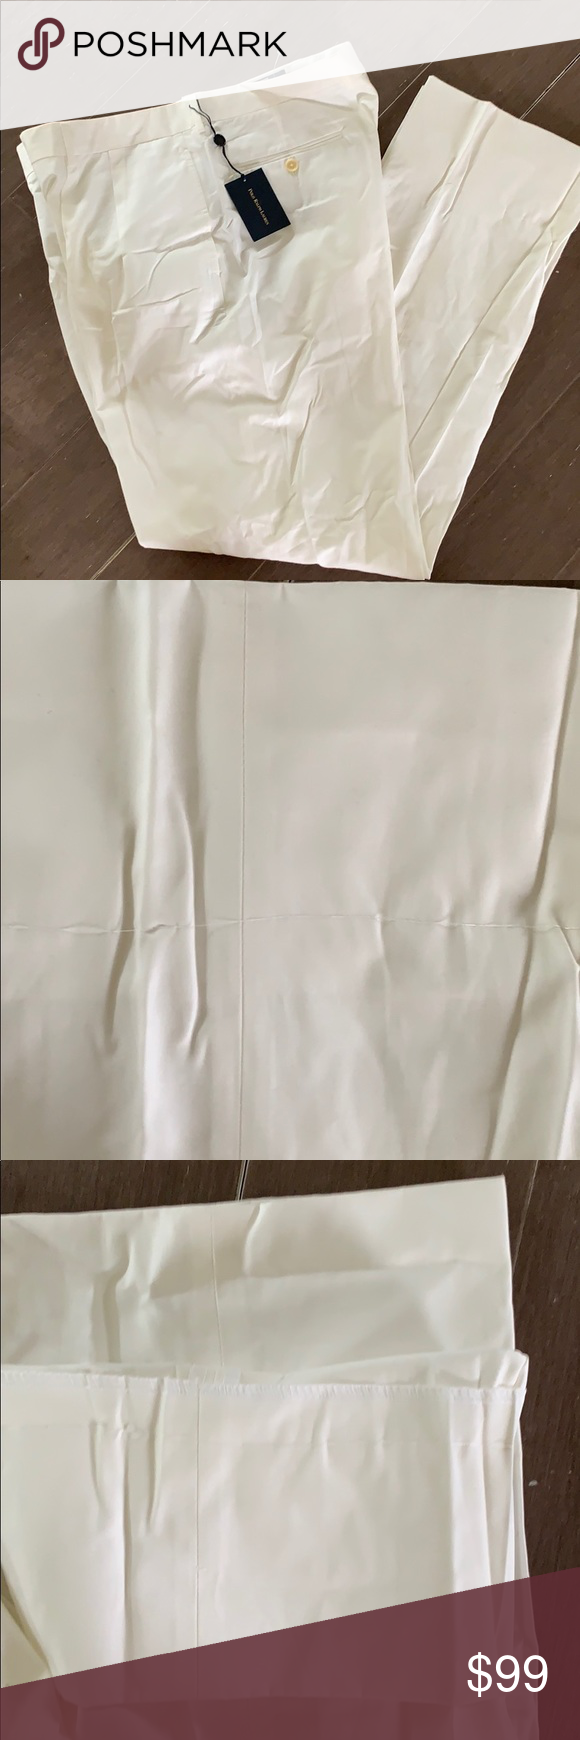 "NWT Polo by Ralph Lauren white slacks 38 $165 Unfinished so length can be customized. Total inseam 39"" so could be finished to fit short, regular, tall. A little discoloring at bottom of legs but will easily wash out or be cut off when you have them hemmed Polo by Ralph Lauren Pants Dress #whiteslacks"